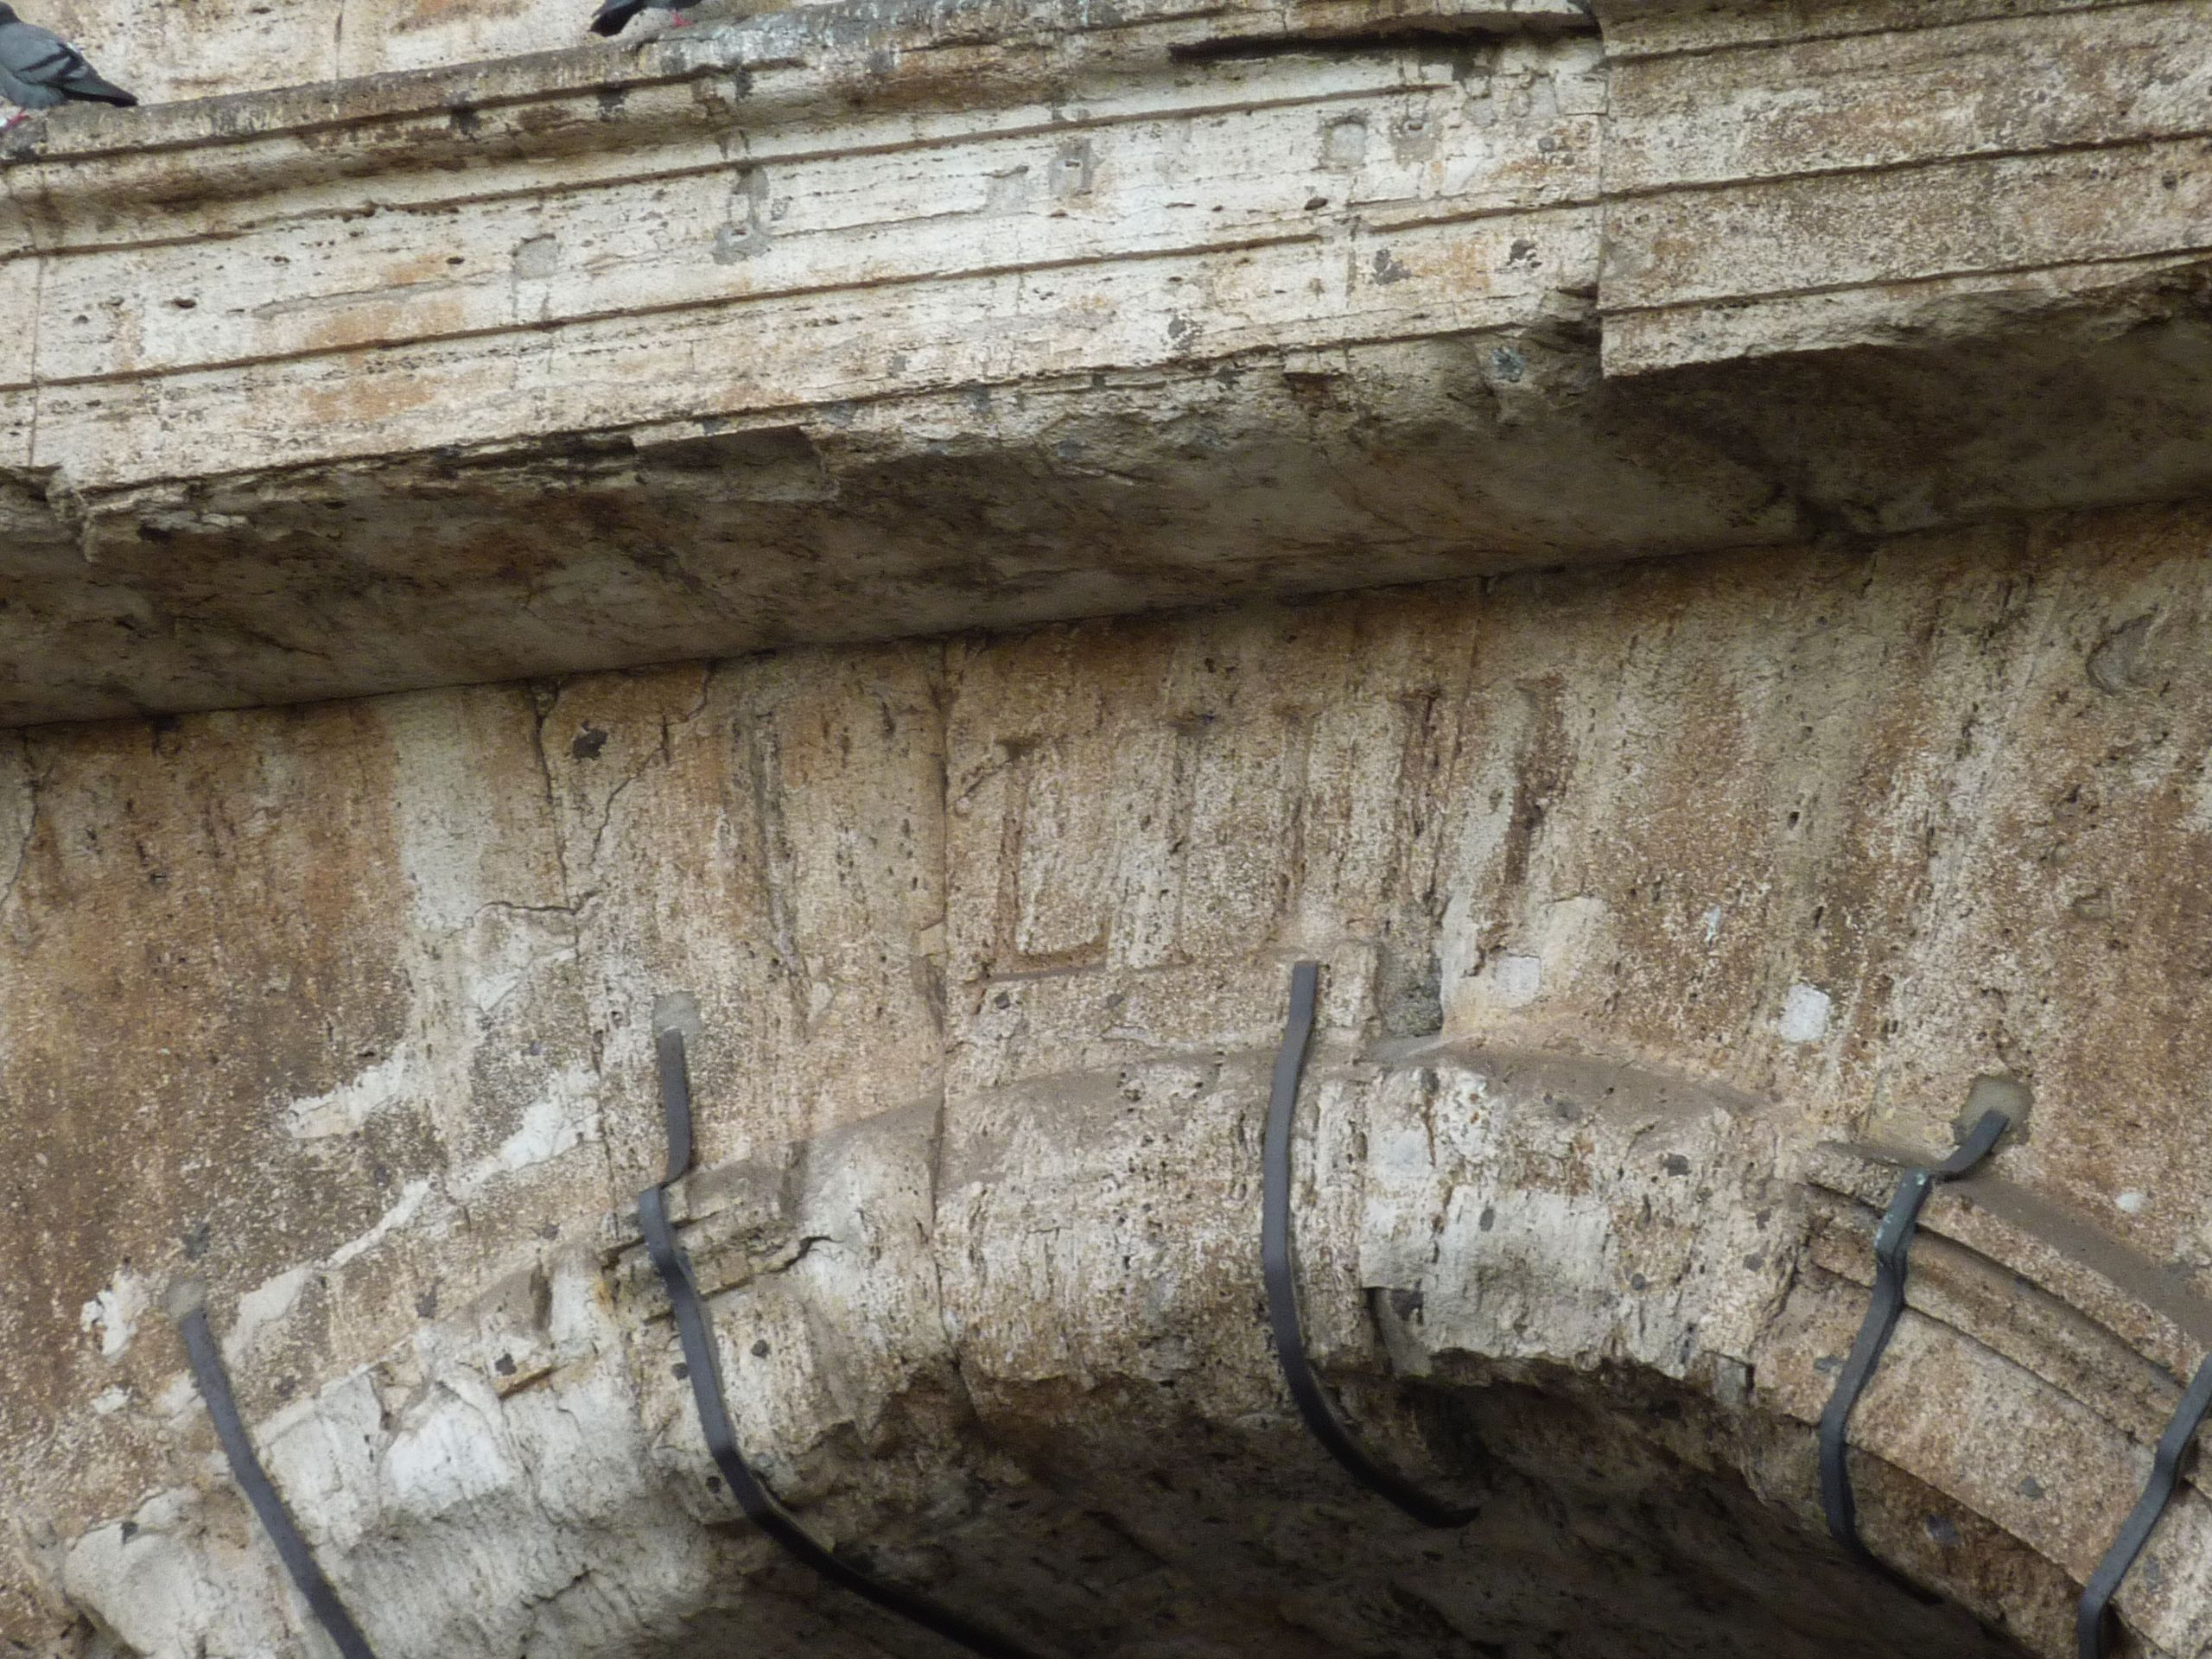 Entrance numbers carved in Roman numerals still seen on the Colosseum today.